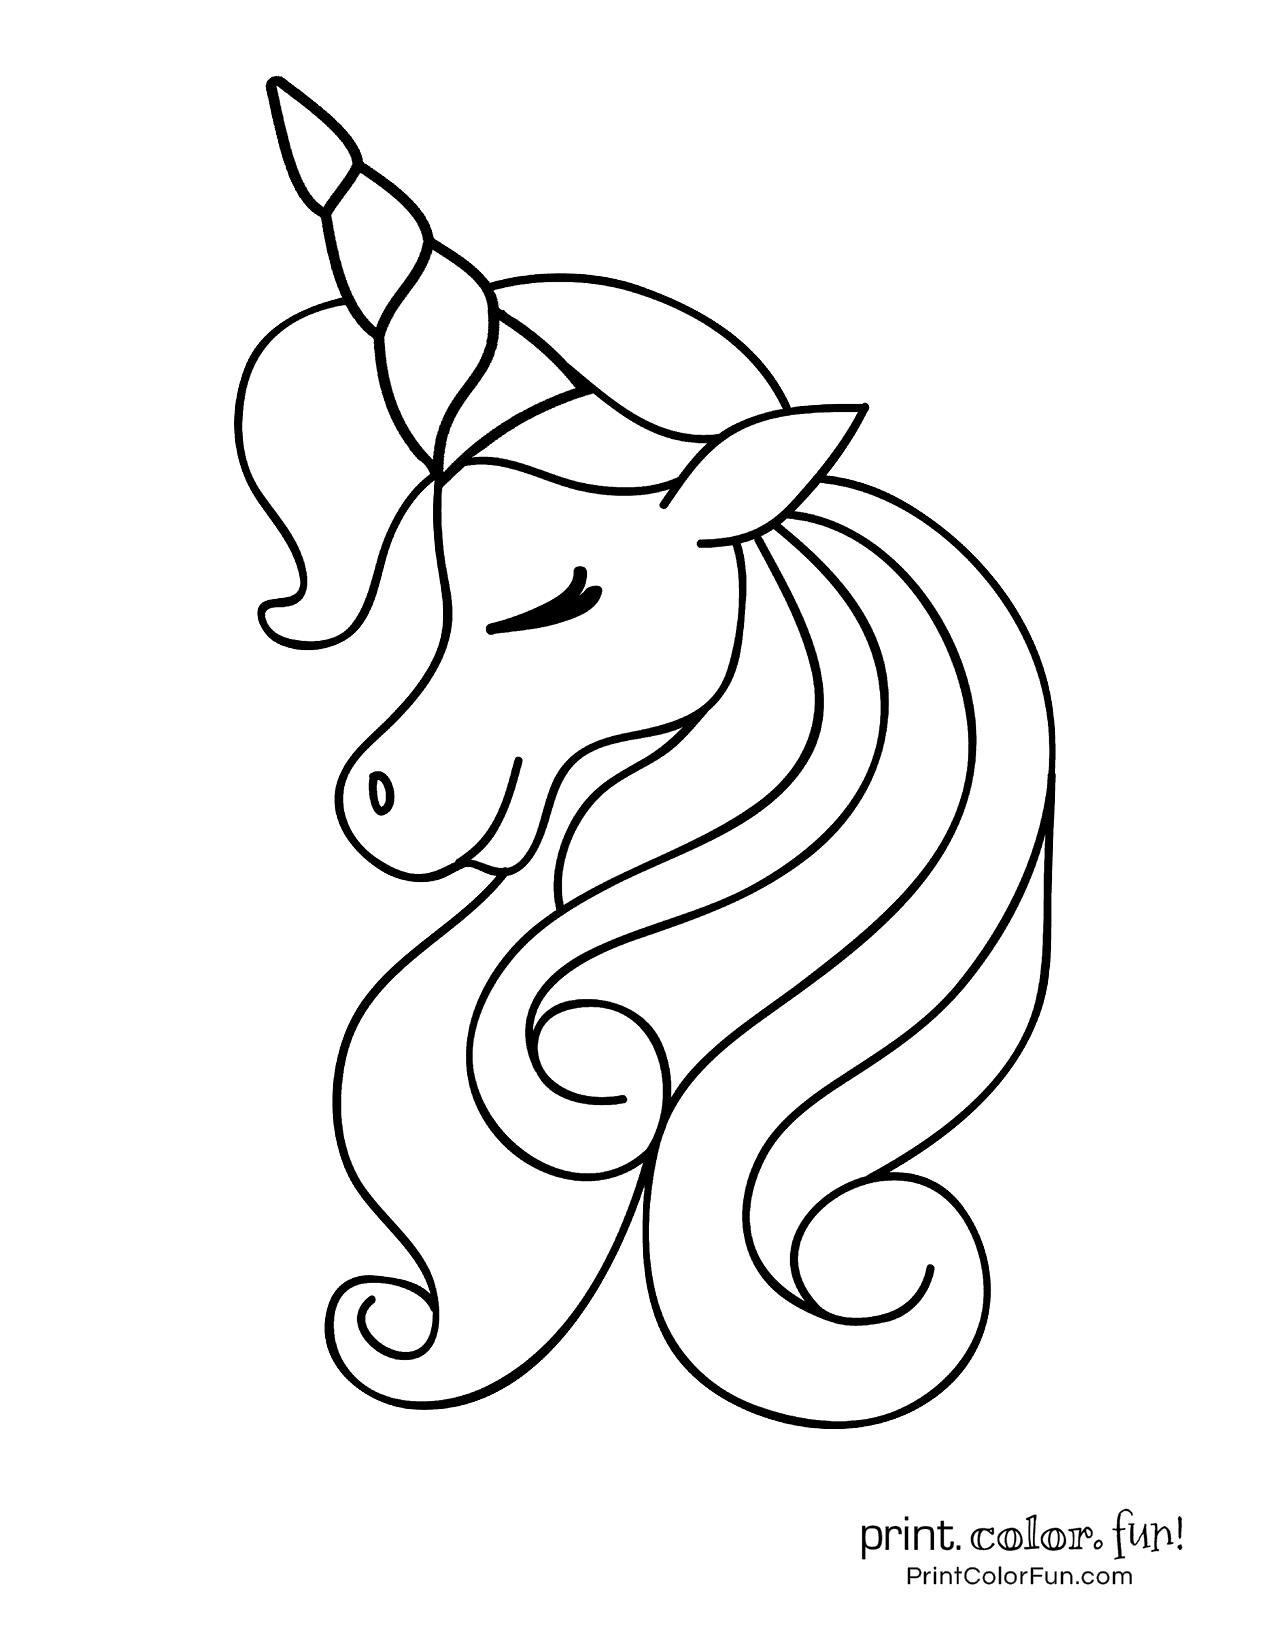 100 Magical Unicorn Coloring Pages The Ultimate Free Printable Collection At Print Color Unicorn Coloring Pages Easy Coloring Pages Mermaid Coloring Pages